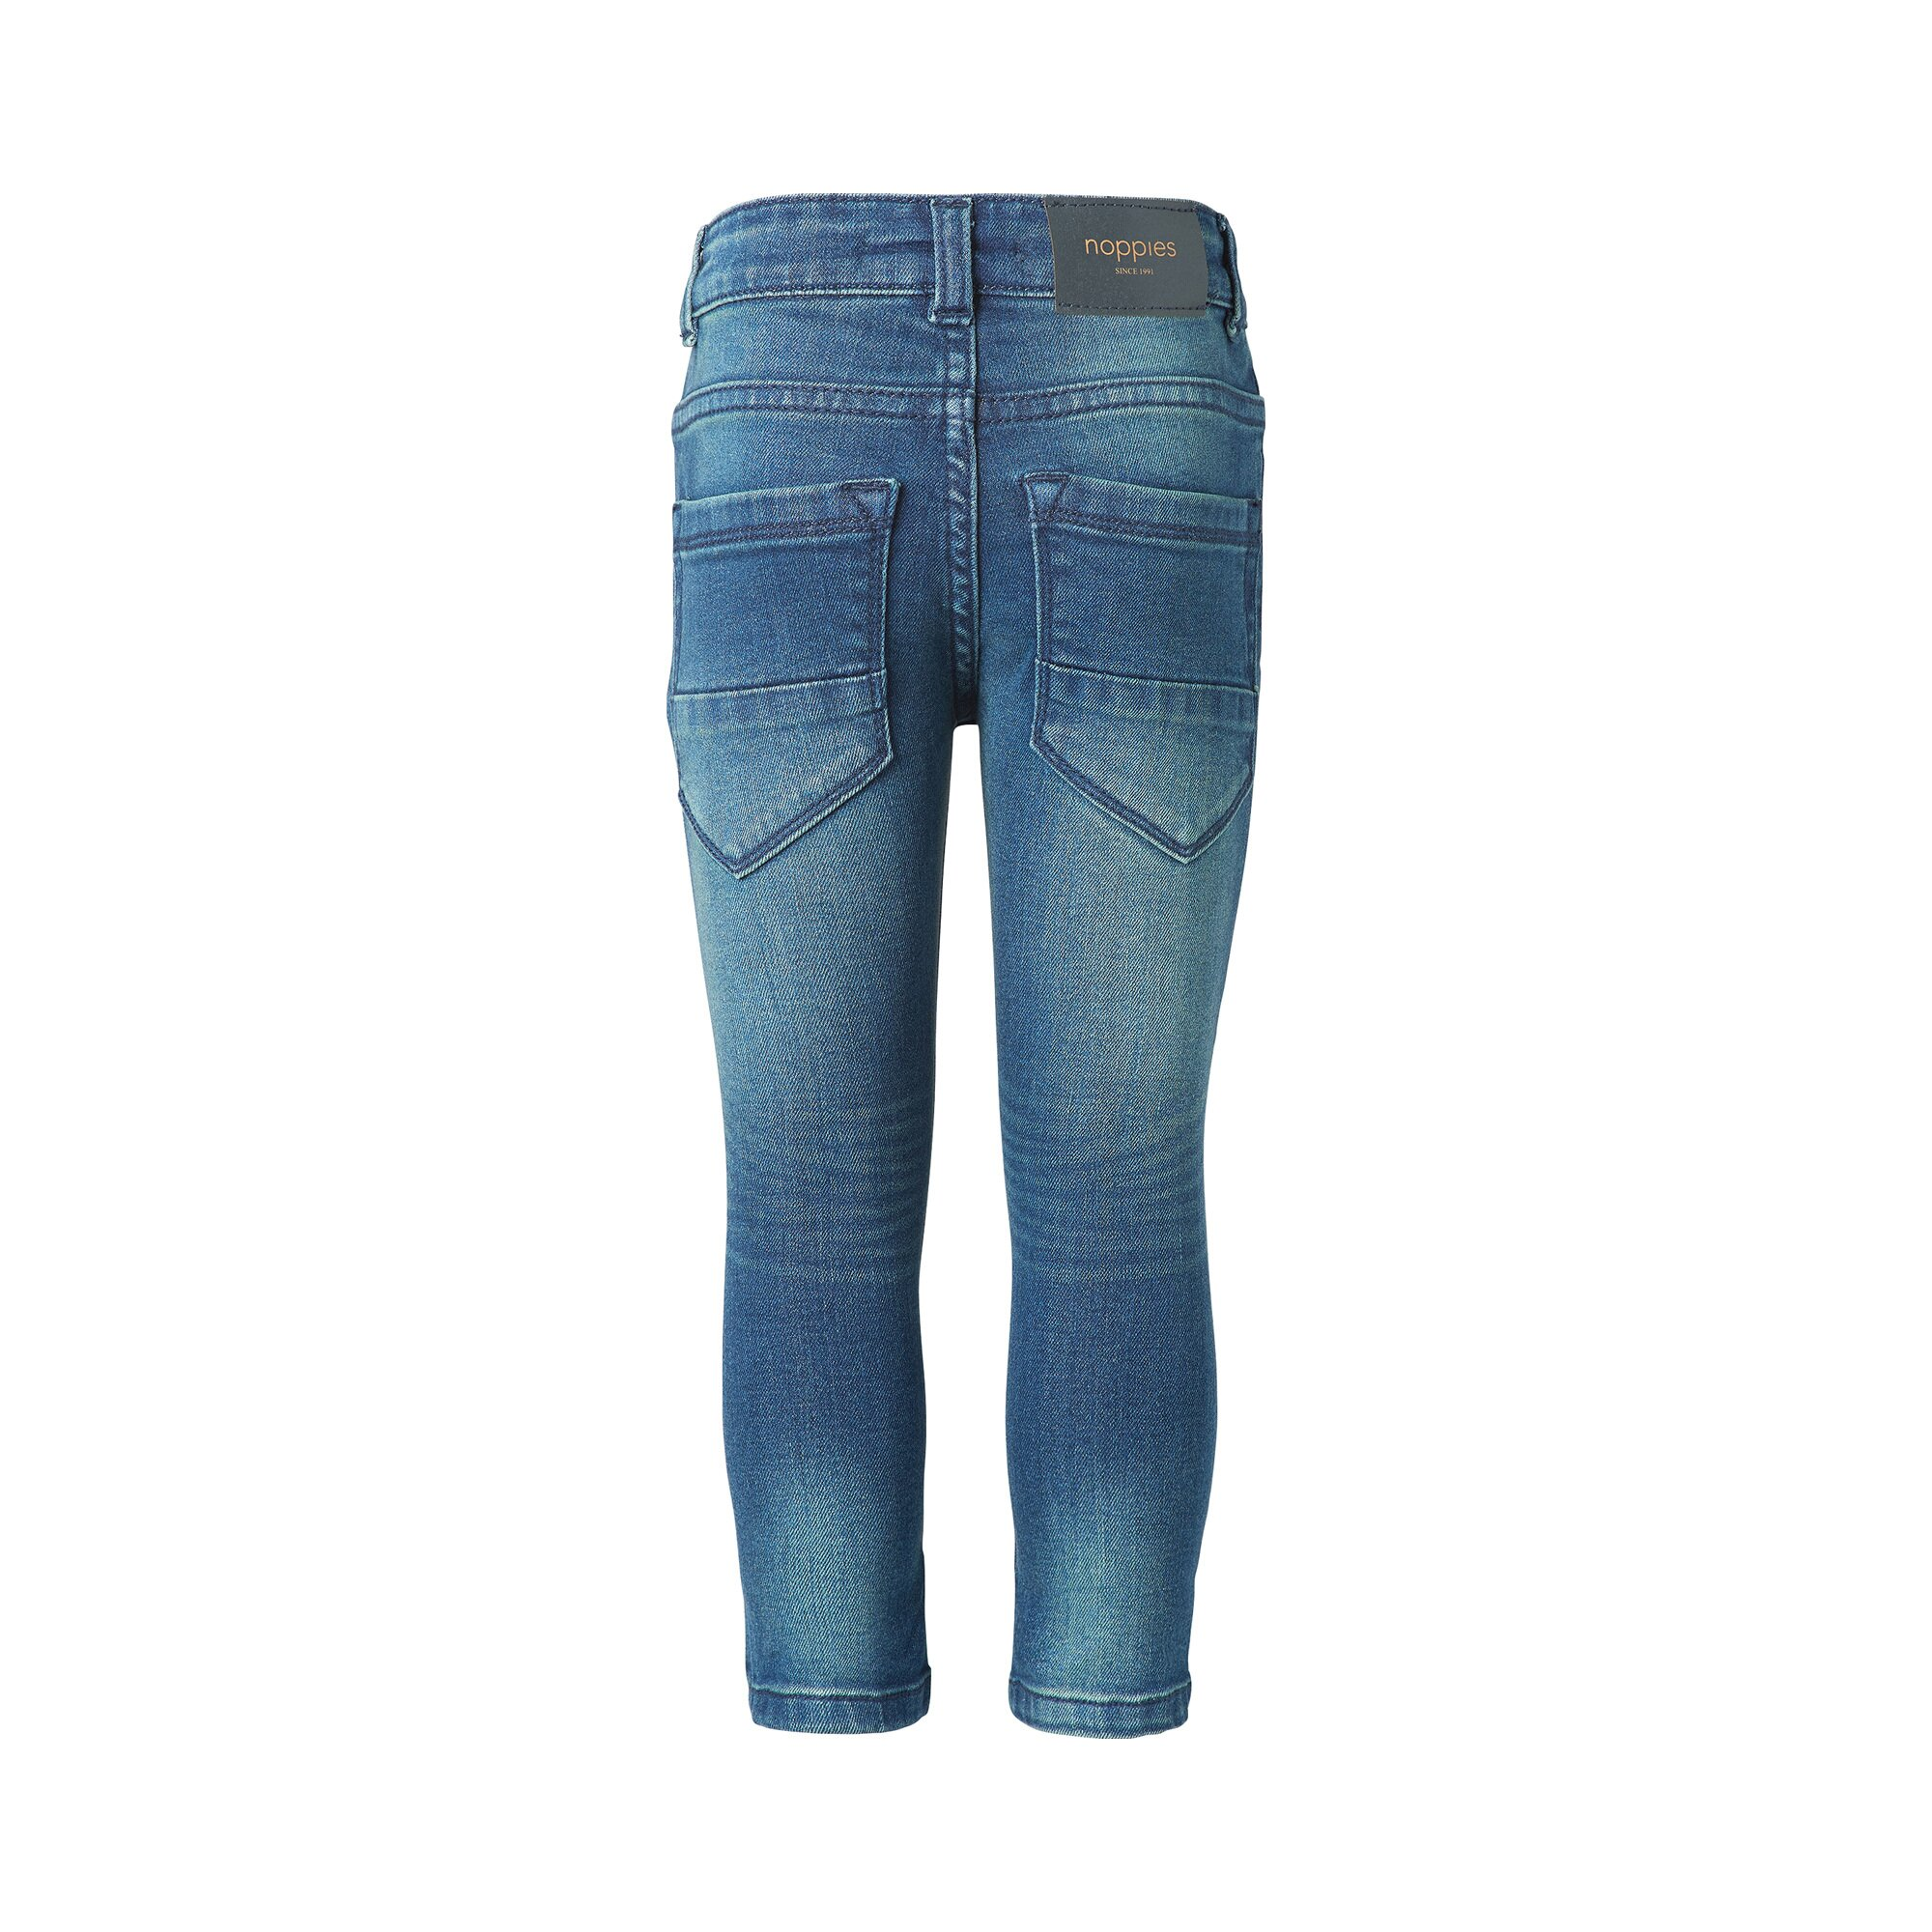 noppies-jeans-slim-krasna